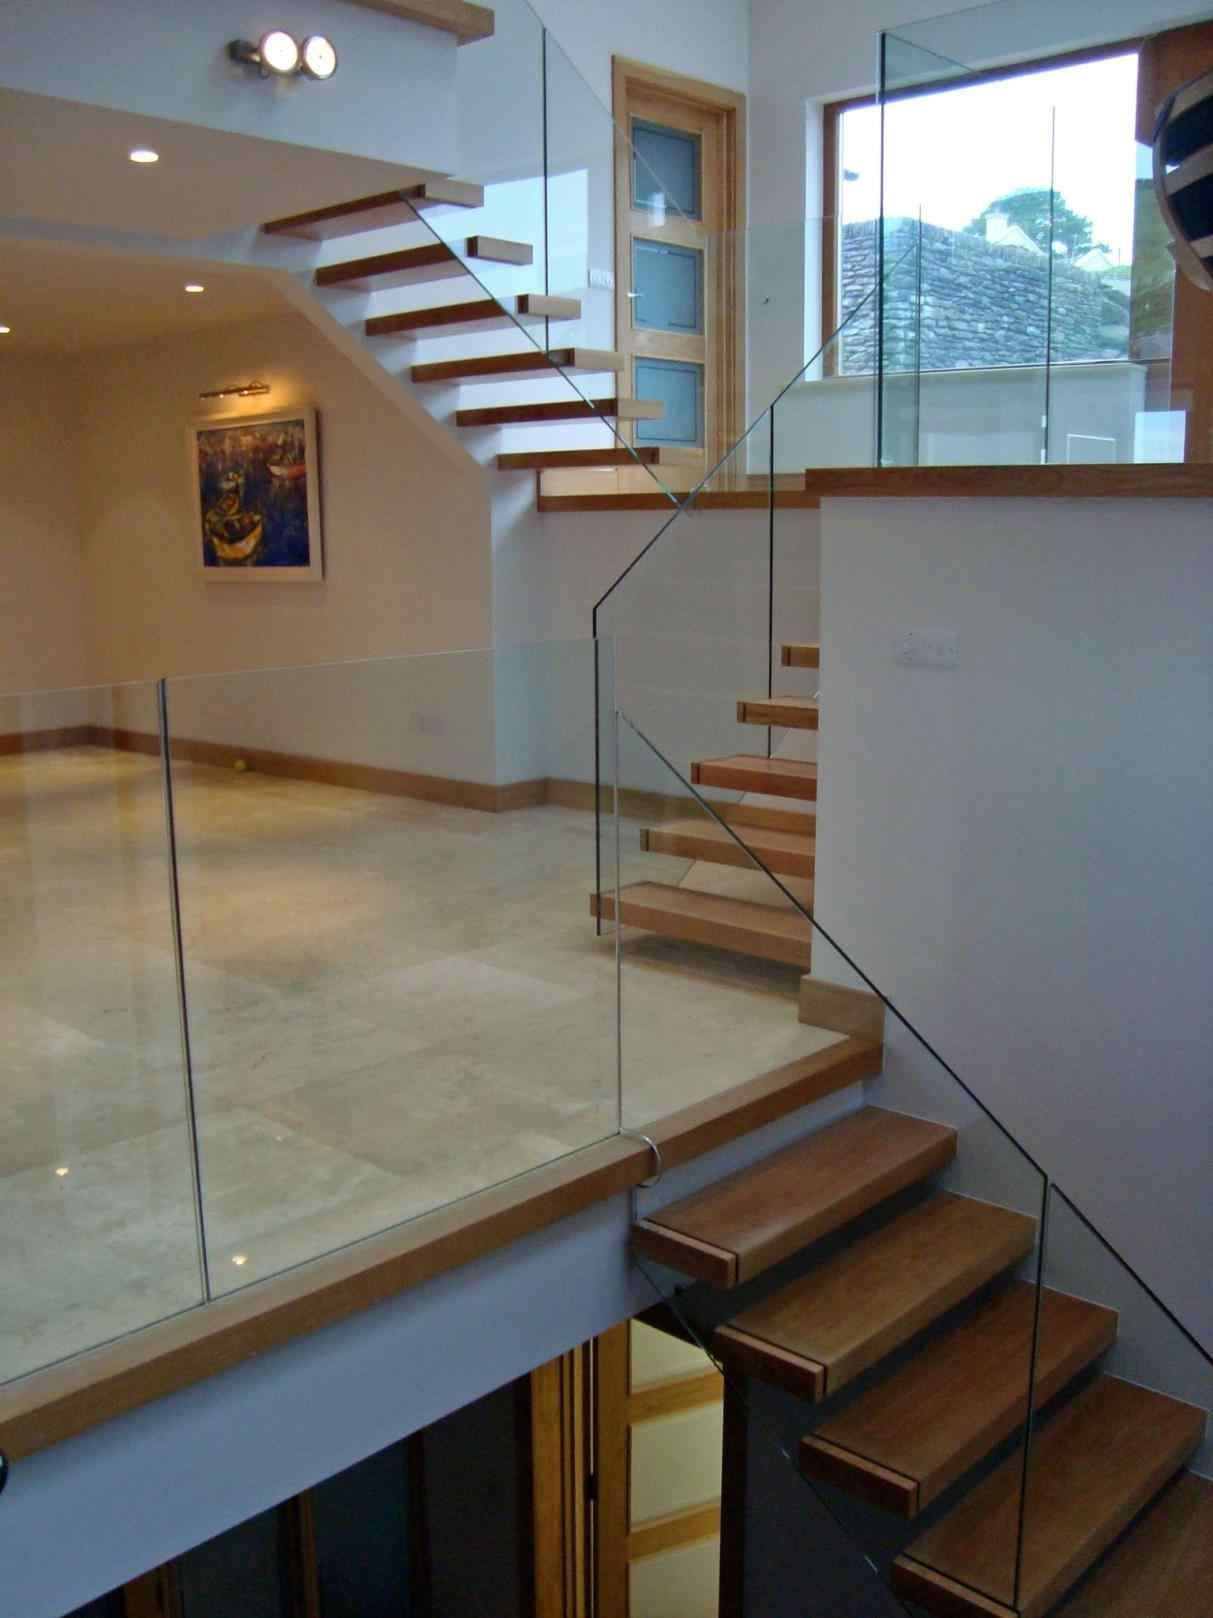 Home treppen design-ideen incredible short stairs design ideas for your home  stairway